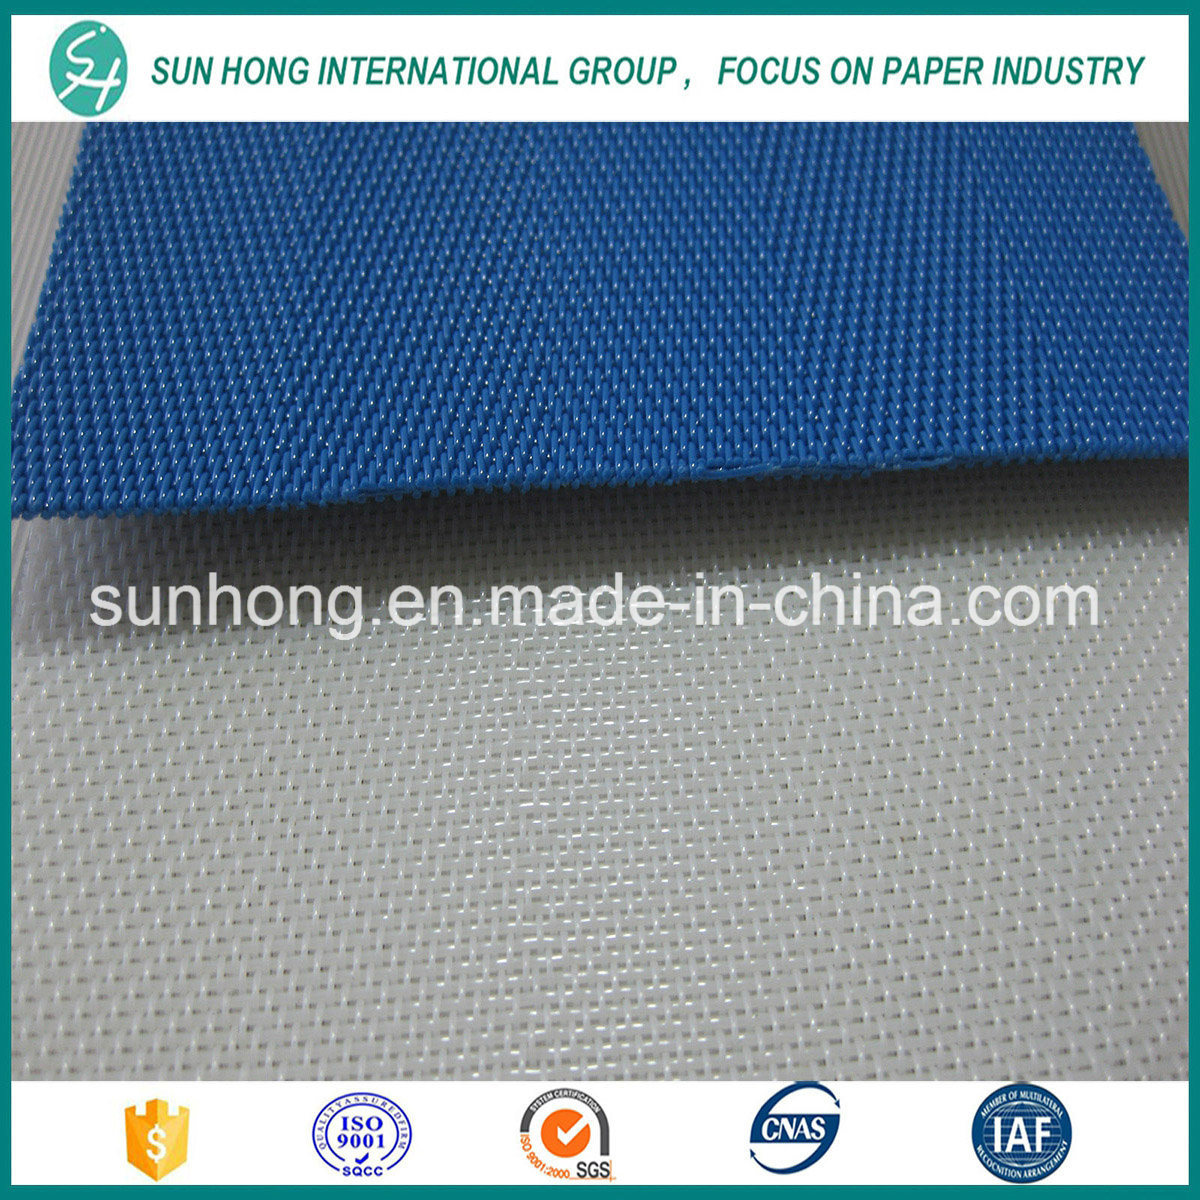 100% Polyester Spiral Dryer Mesh Fabric for Paper Machine